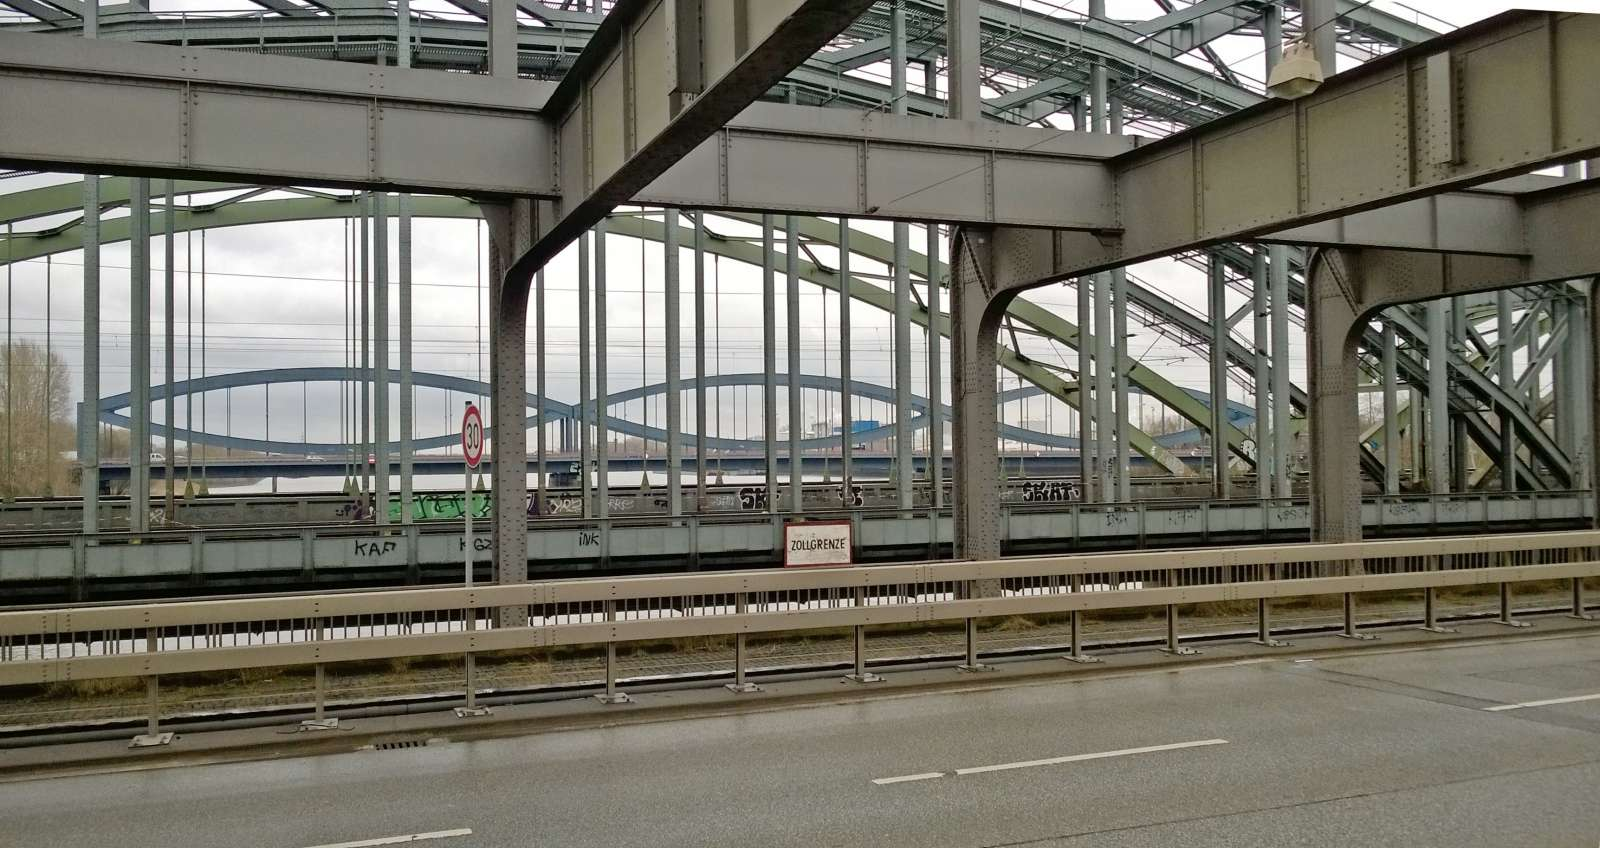 Freihafenelbbrücke, Zollgrenze, Norderelbbrücke, Neue Elbbrücke / Flor!an [CC BY-SA 4.0 (https://creativecommons.org/licenses/by-sa/4.0)], from Wikimedia Commons